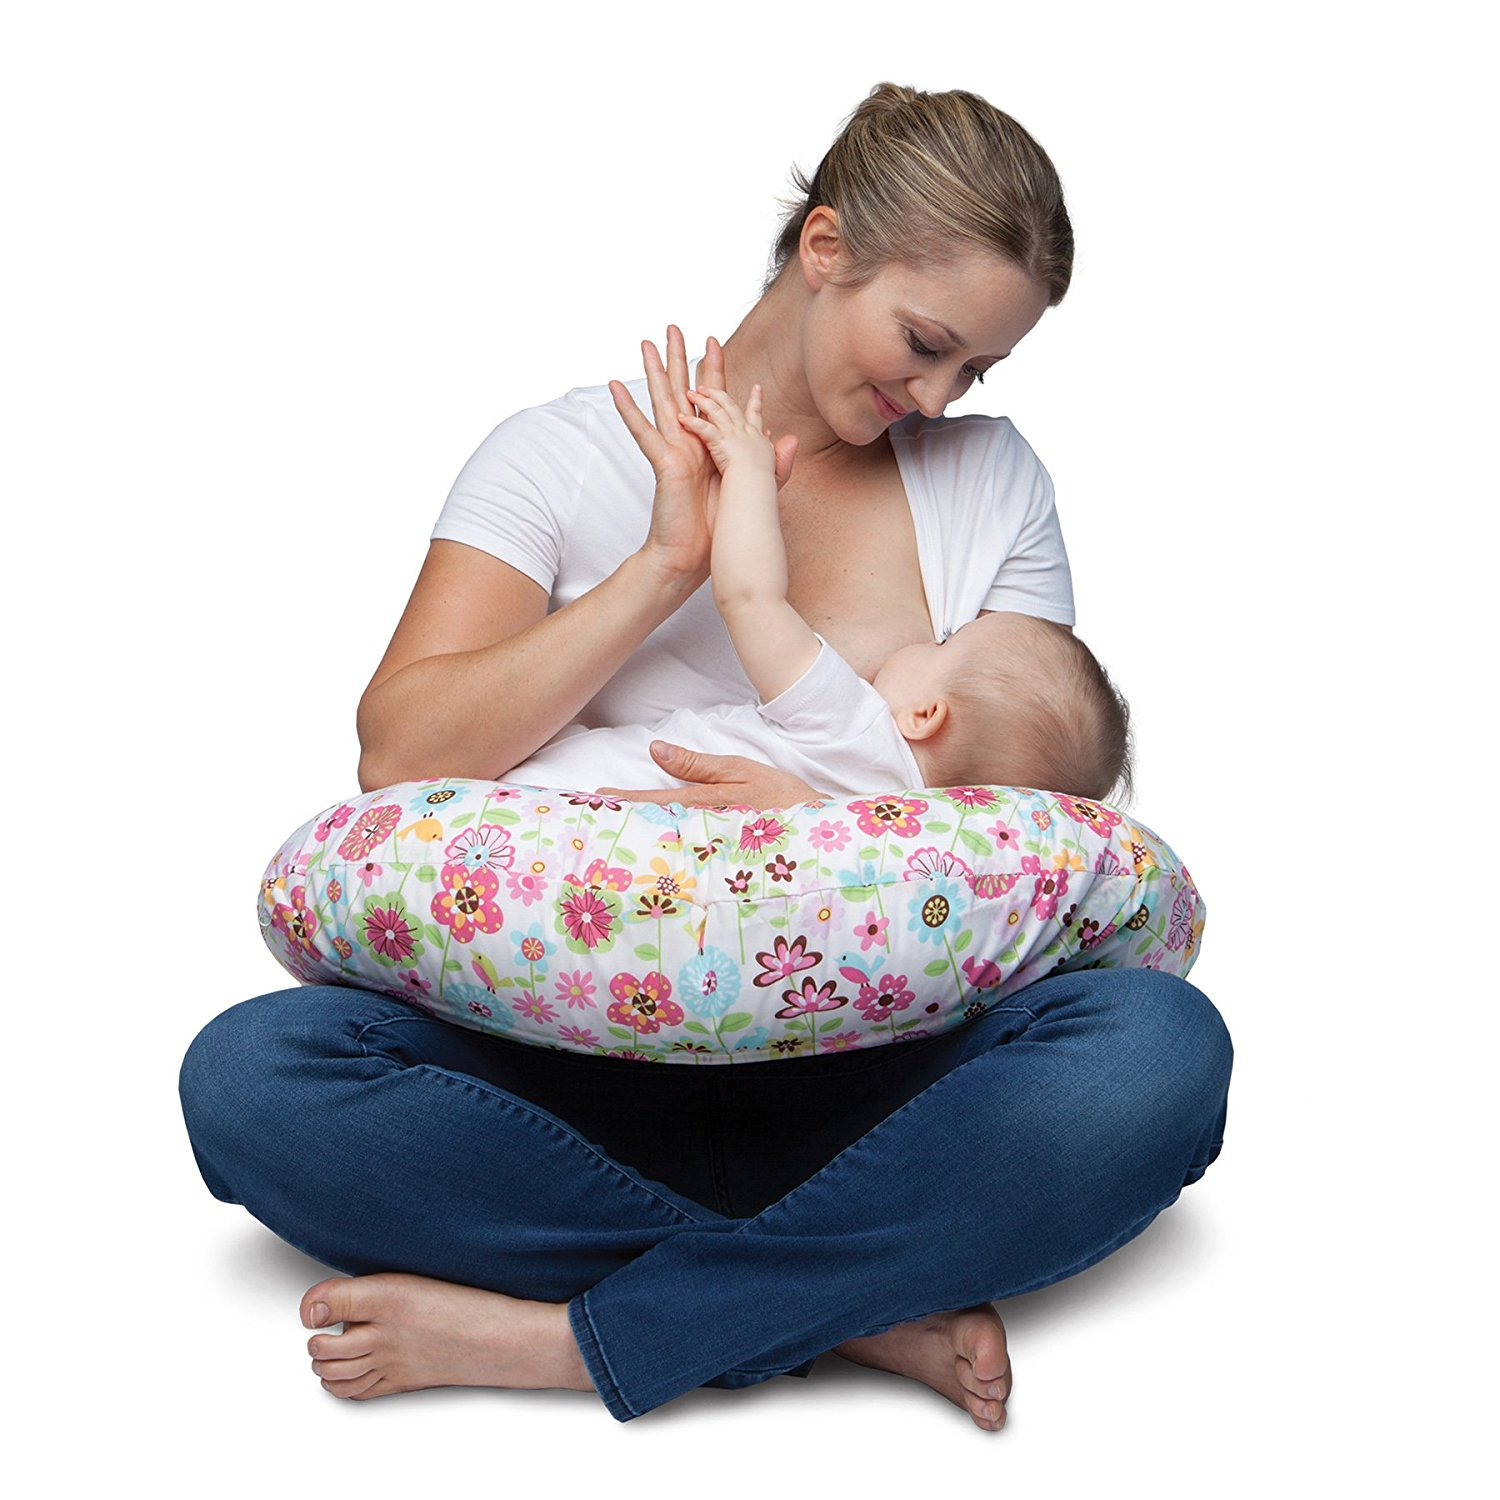 ComfyFit® Baby Carrier. The Boppy® ComfyFit® Baby Carrier is the easiest way to wear your baby—simply click, strap, tie and go! Inspired by yoga apparel, the .